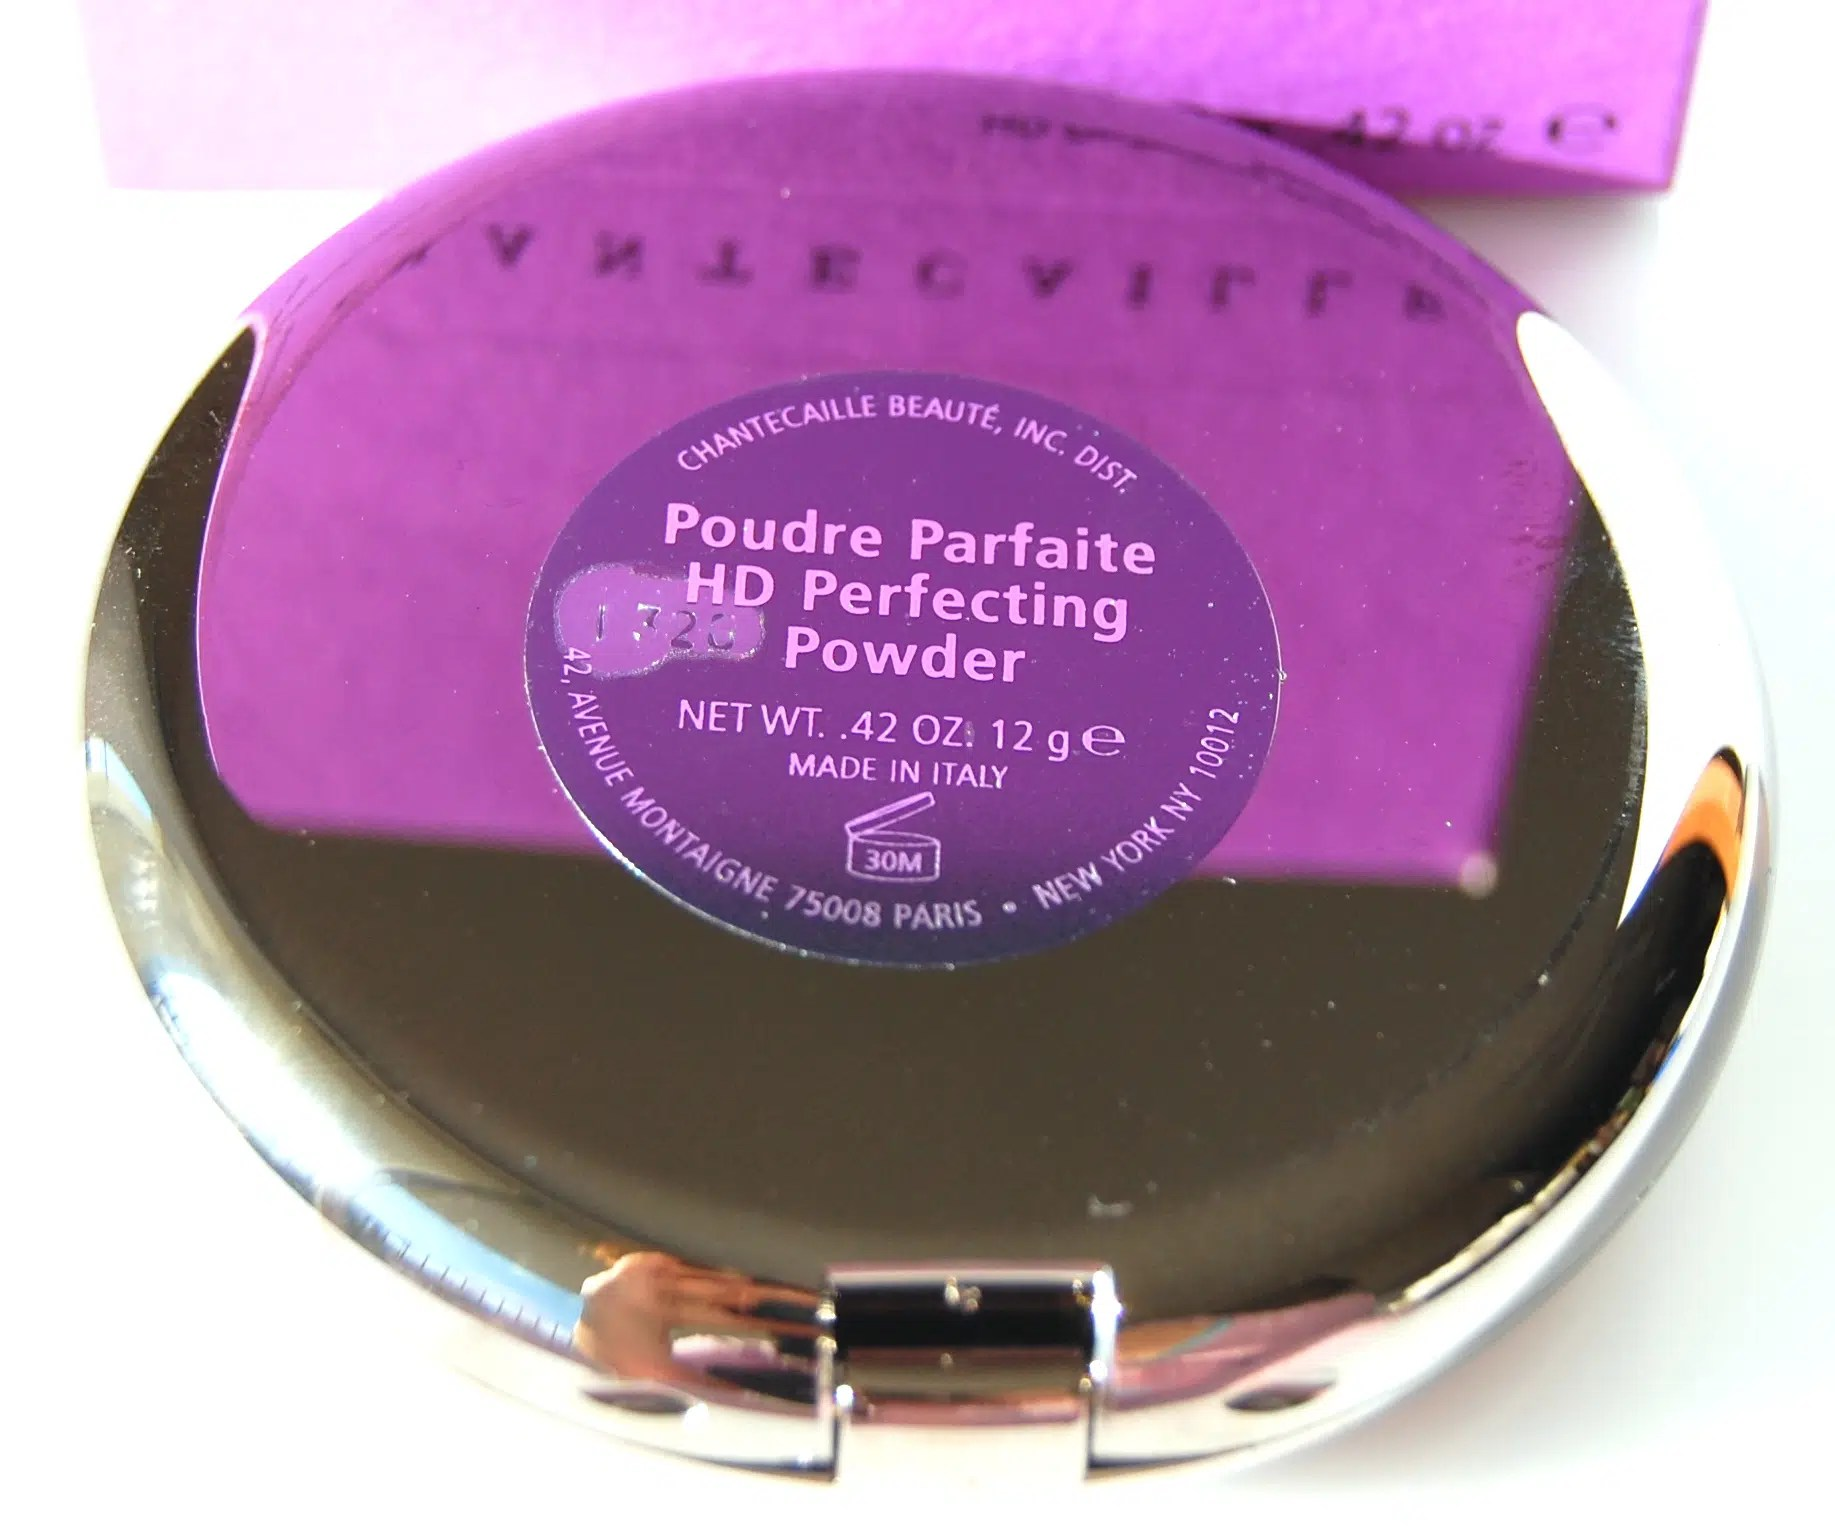 High Definition Perfecting Powder by chantecaille #21